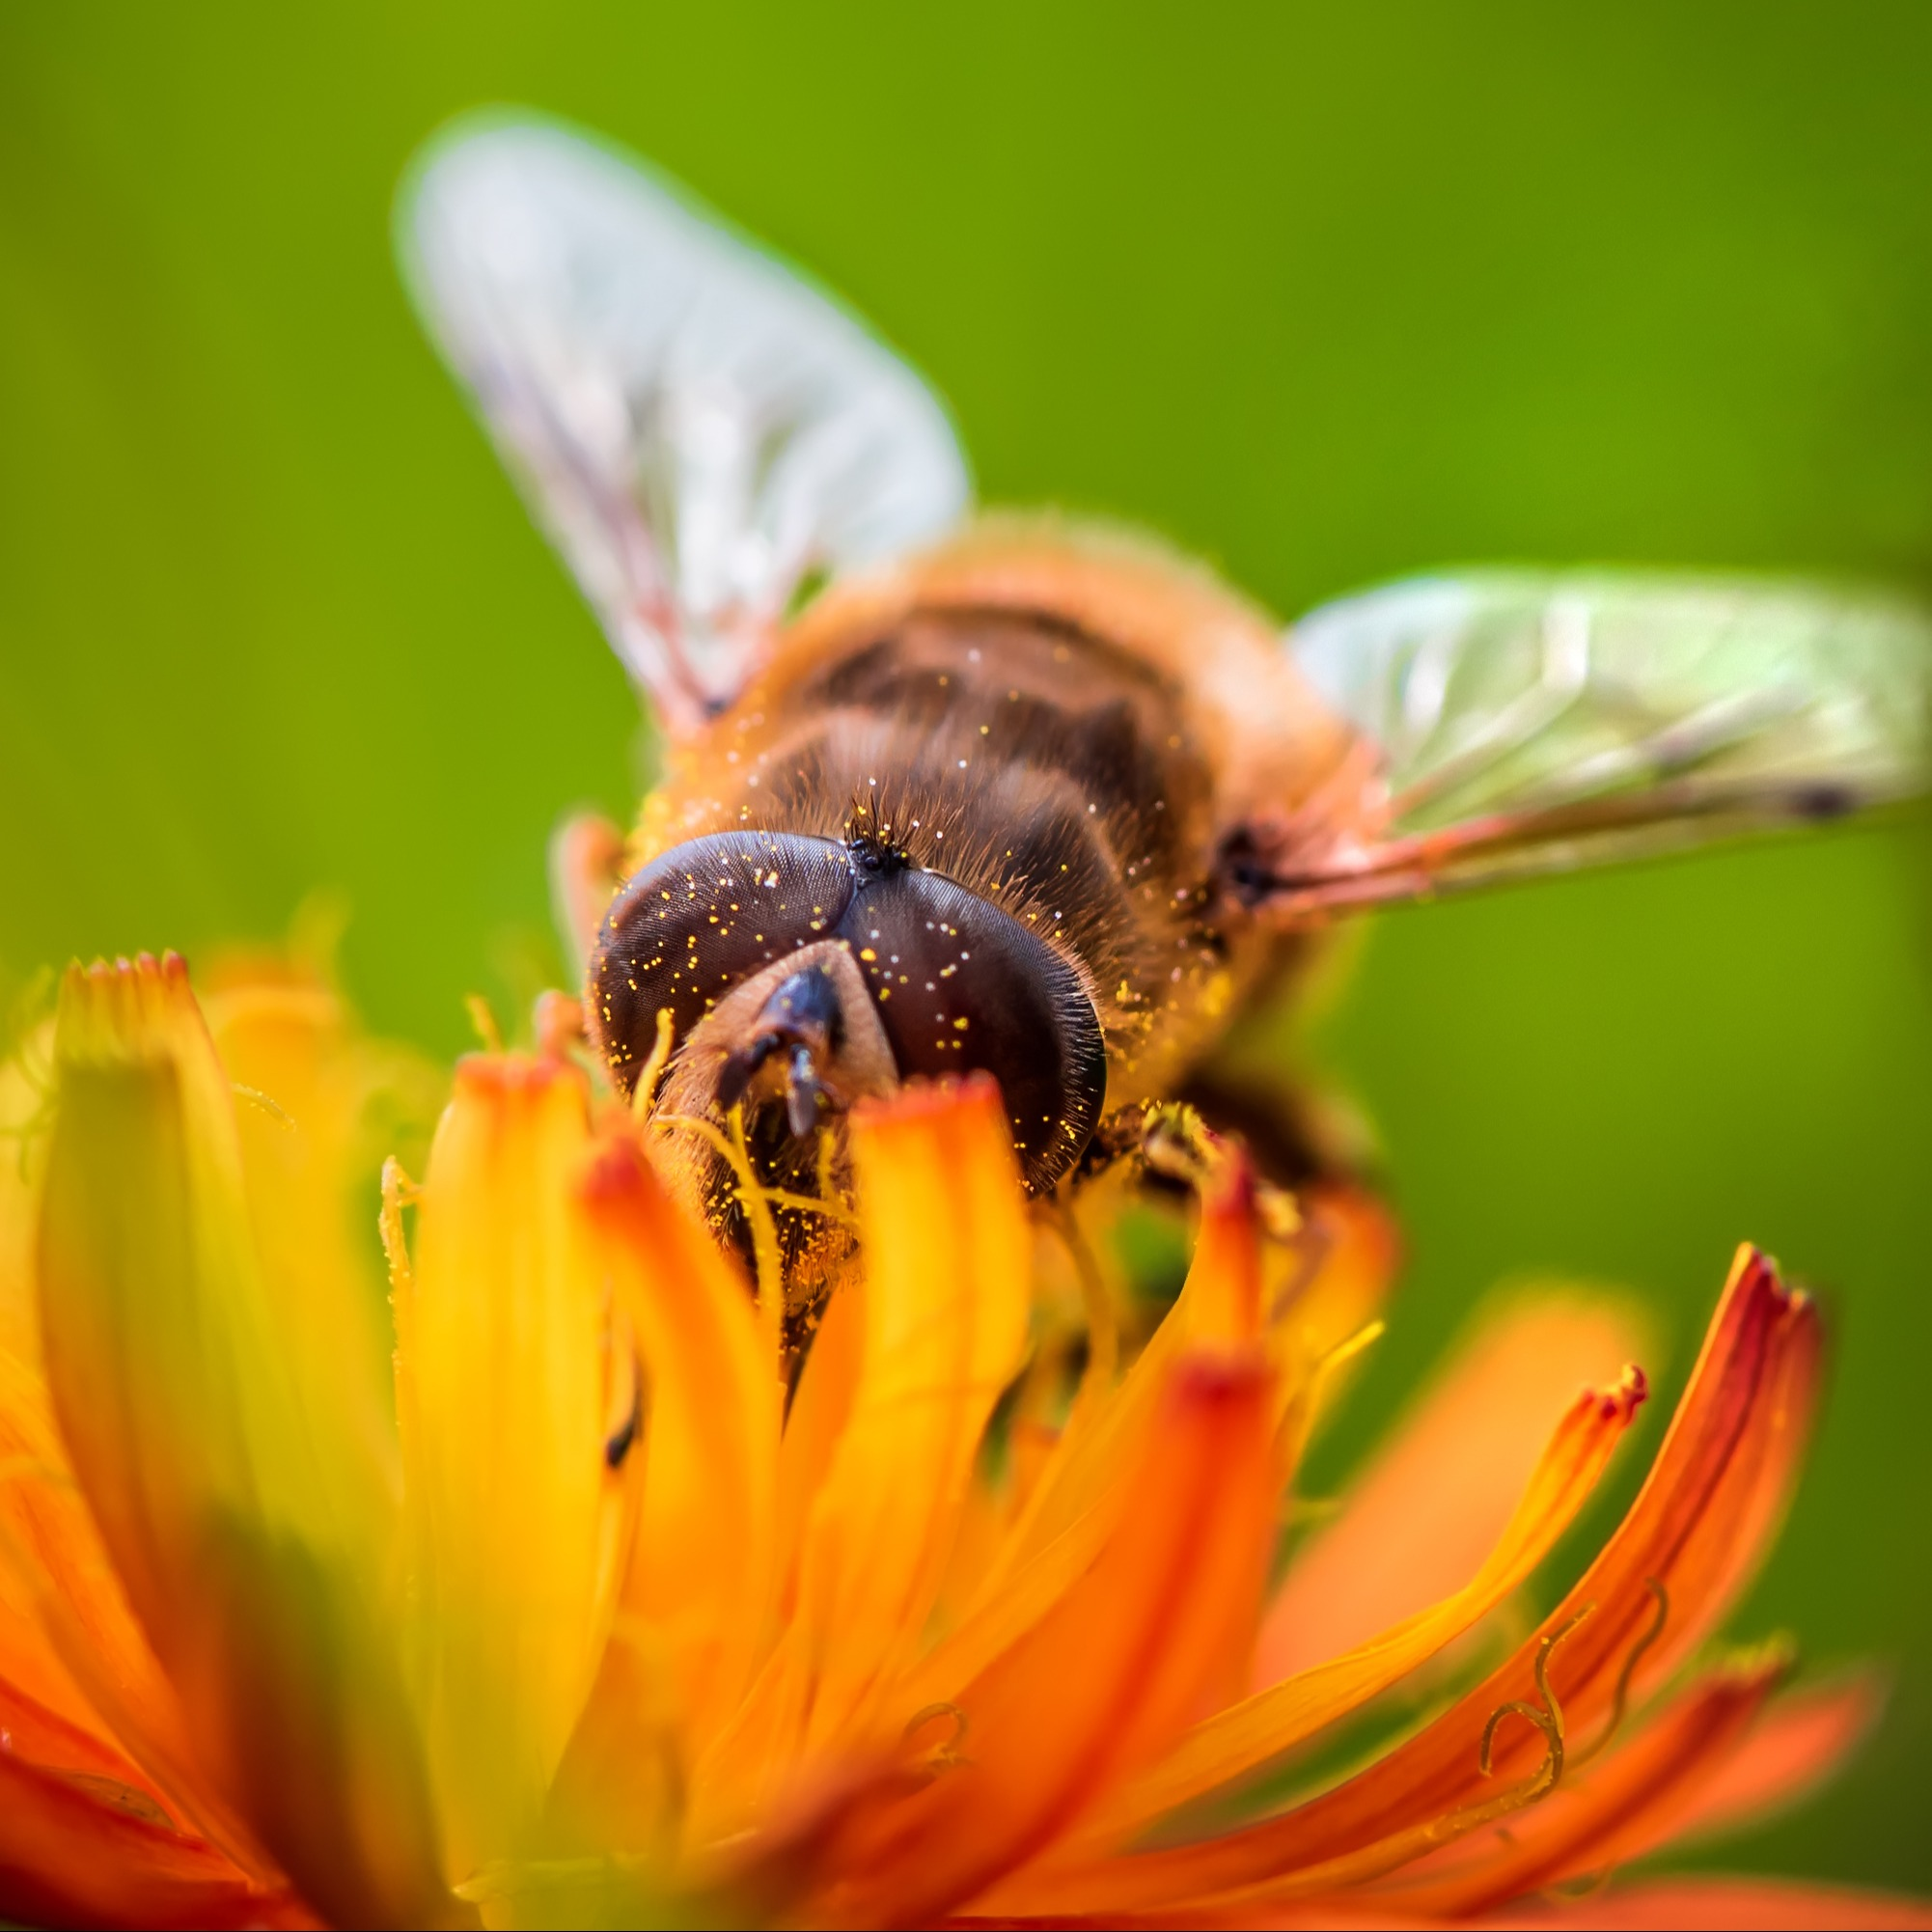 bee-collects-nectar-from-flower-crepis-alpina-ZR4BS8K